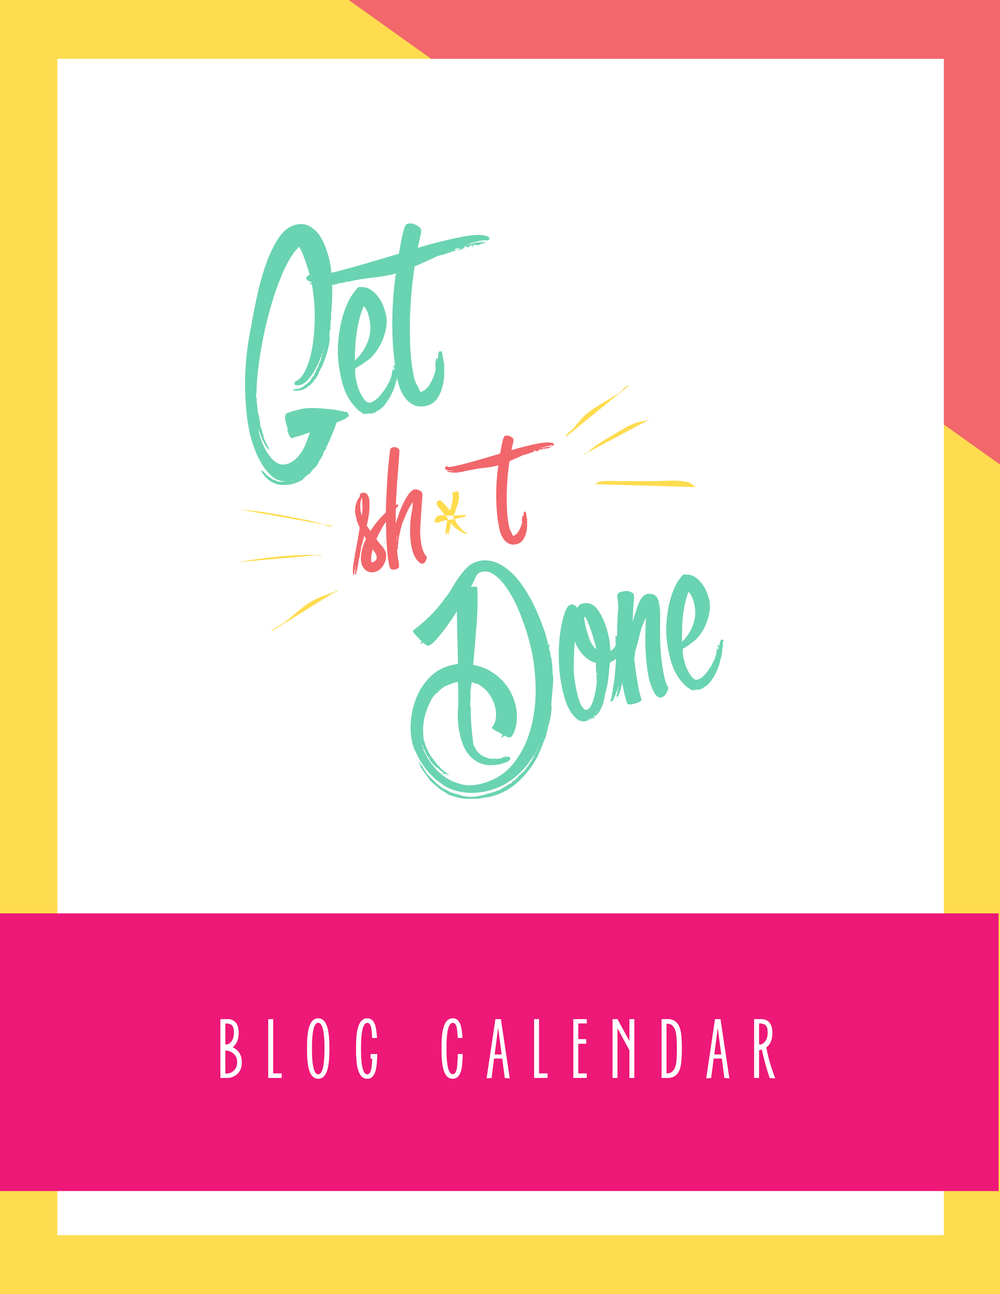 Bold & Pop Get Shit Done Blog Calendar